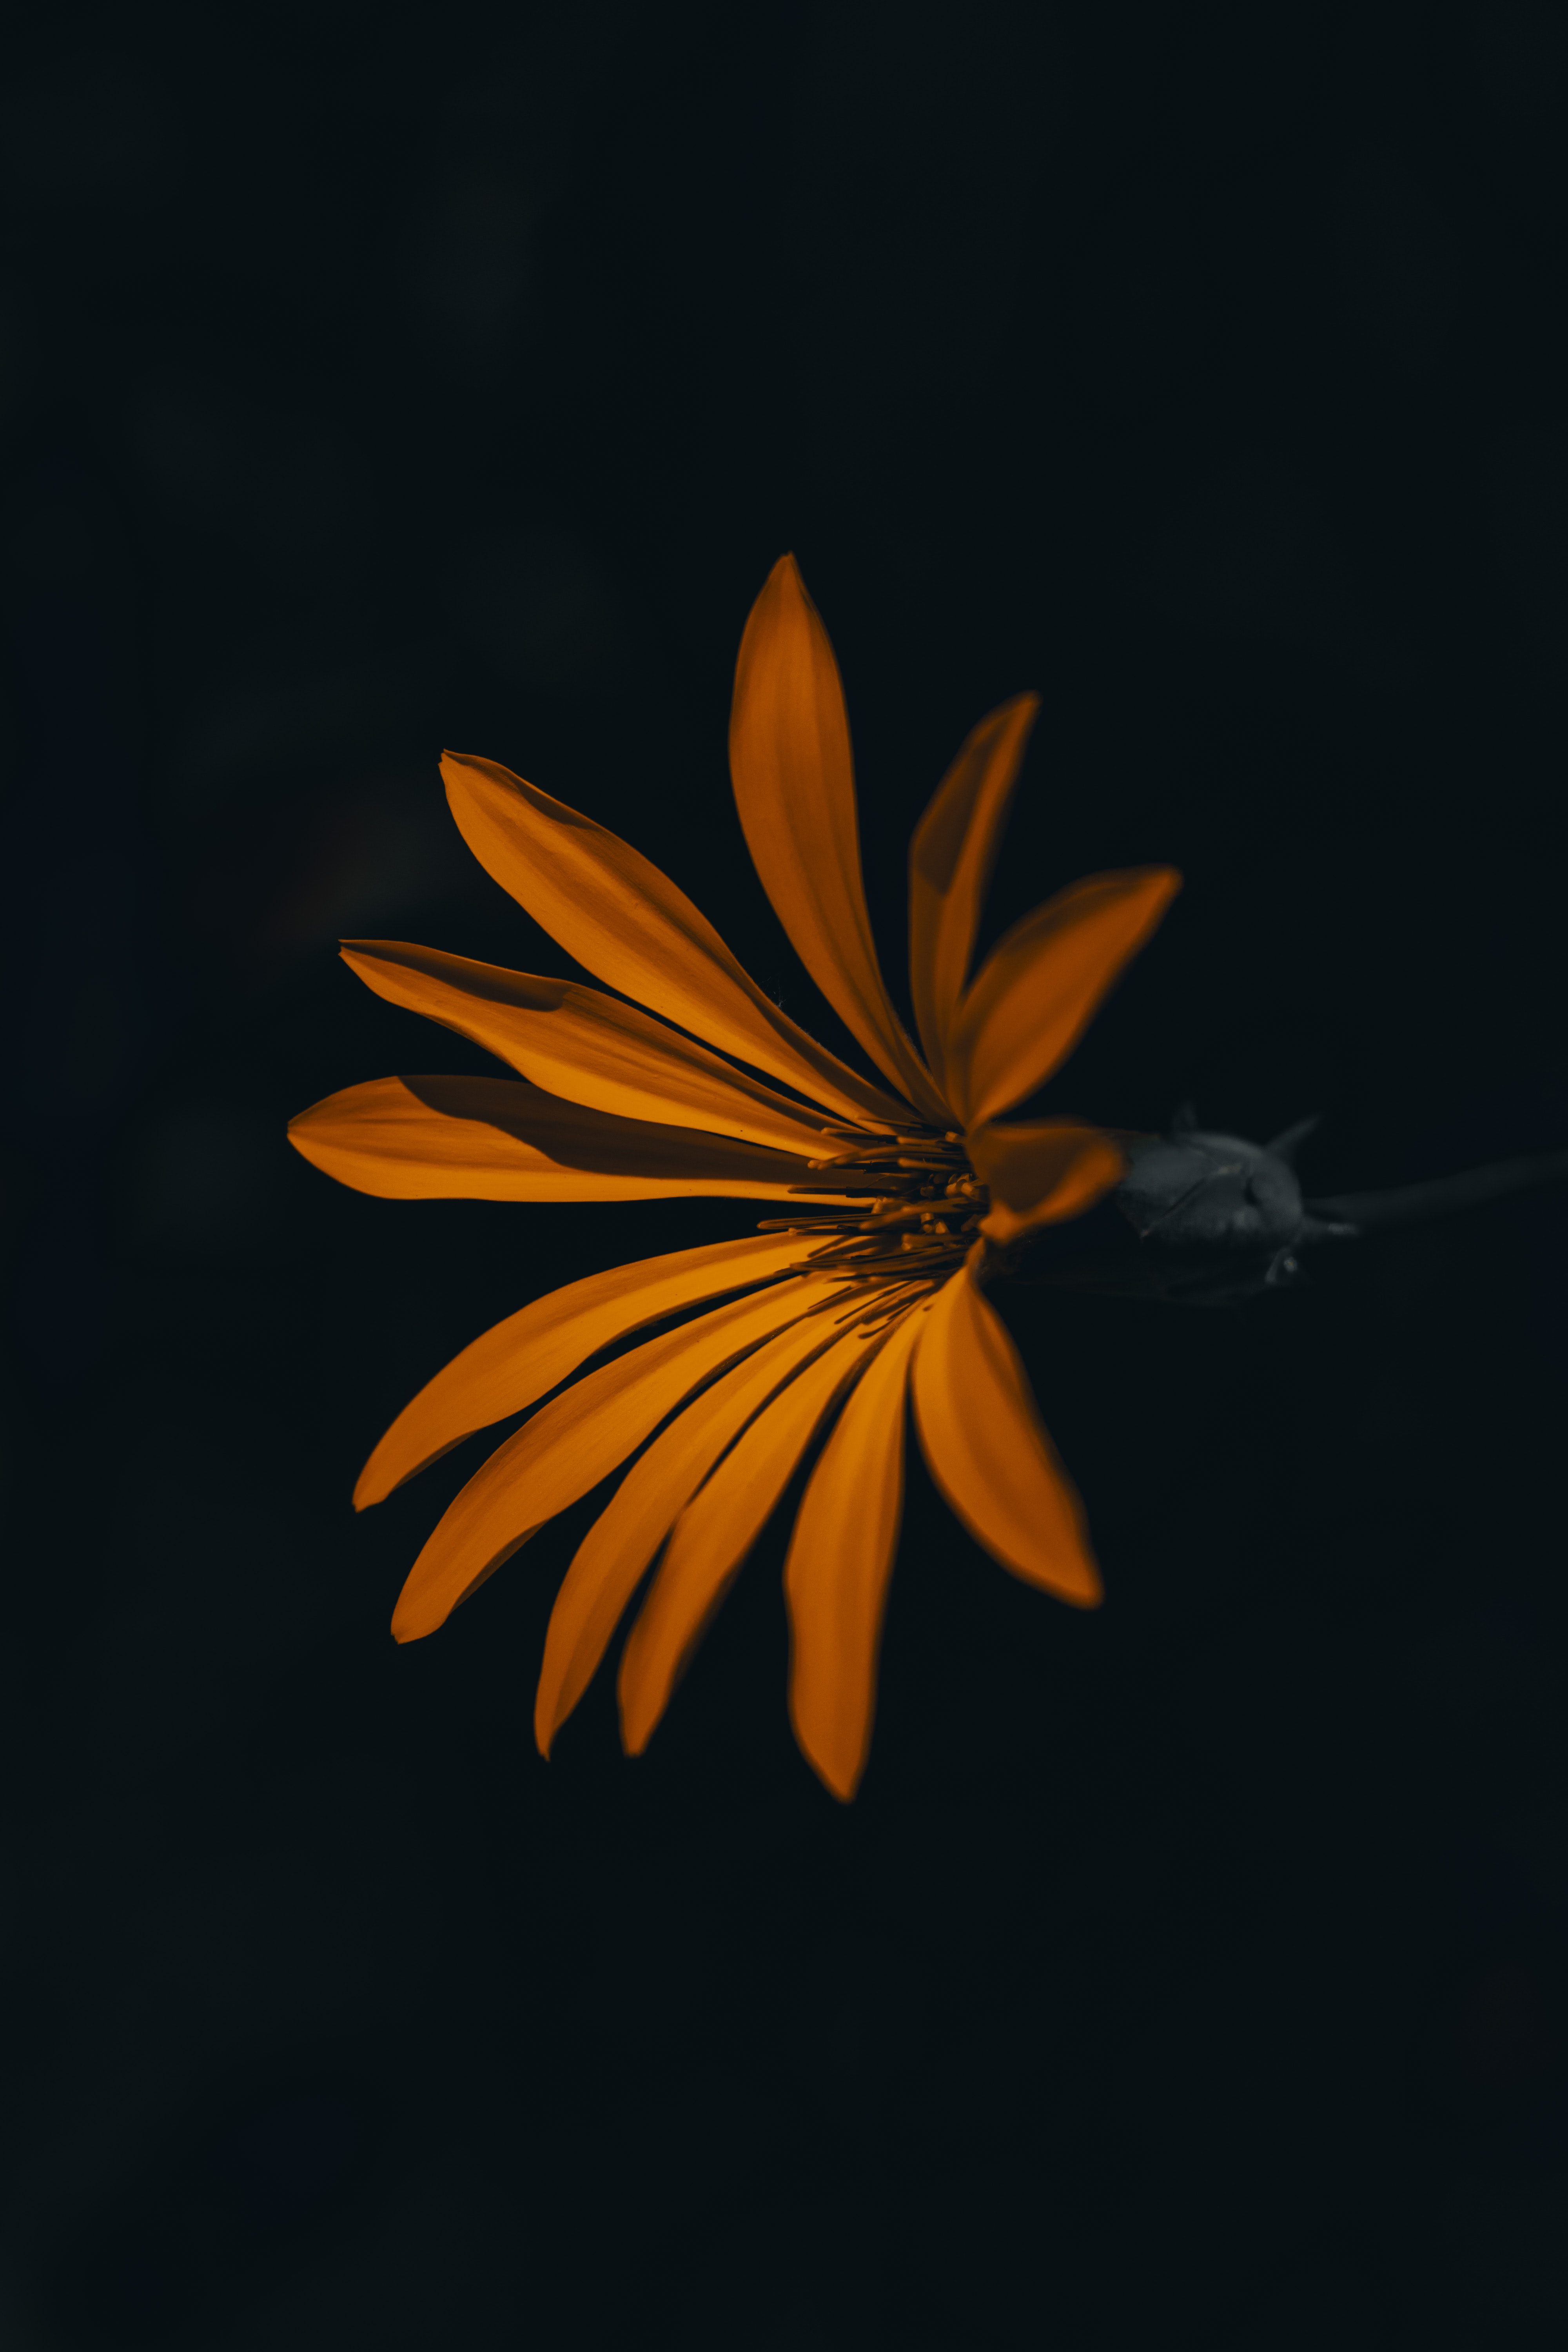 orange flower blooming in the dark